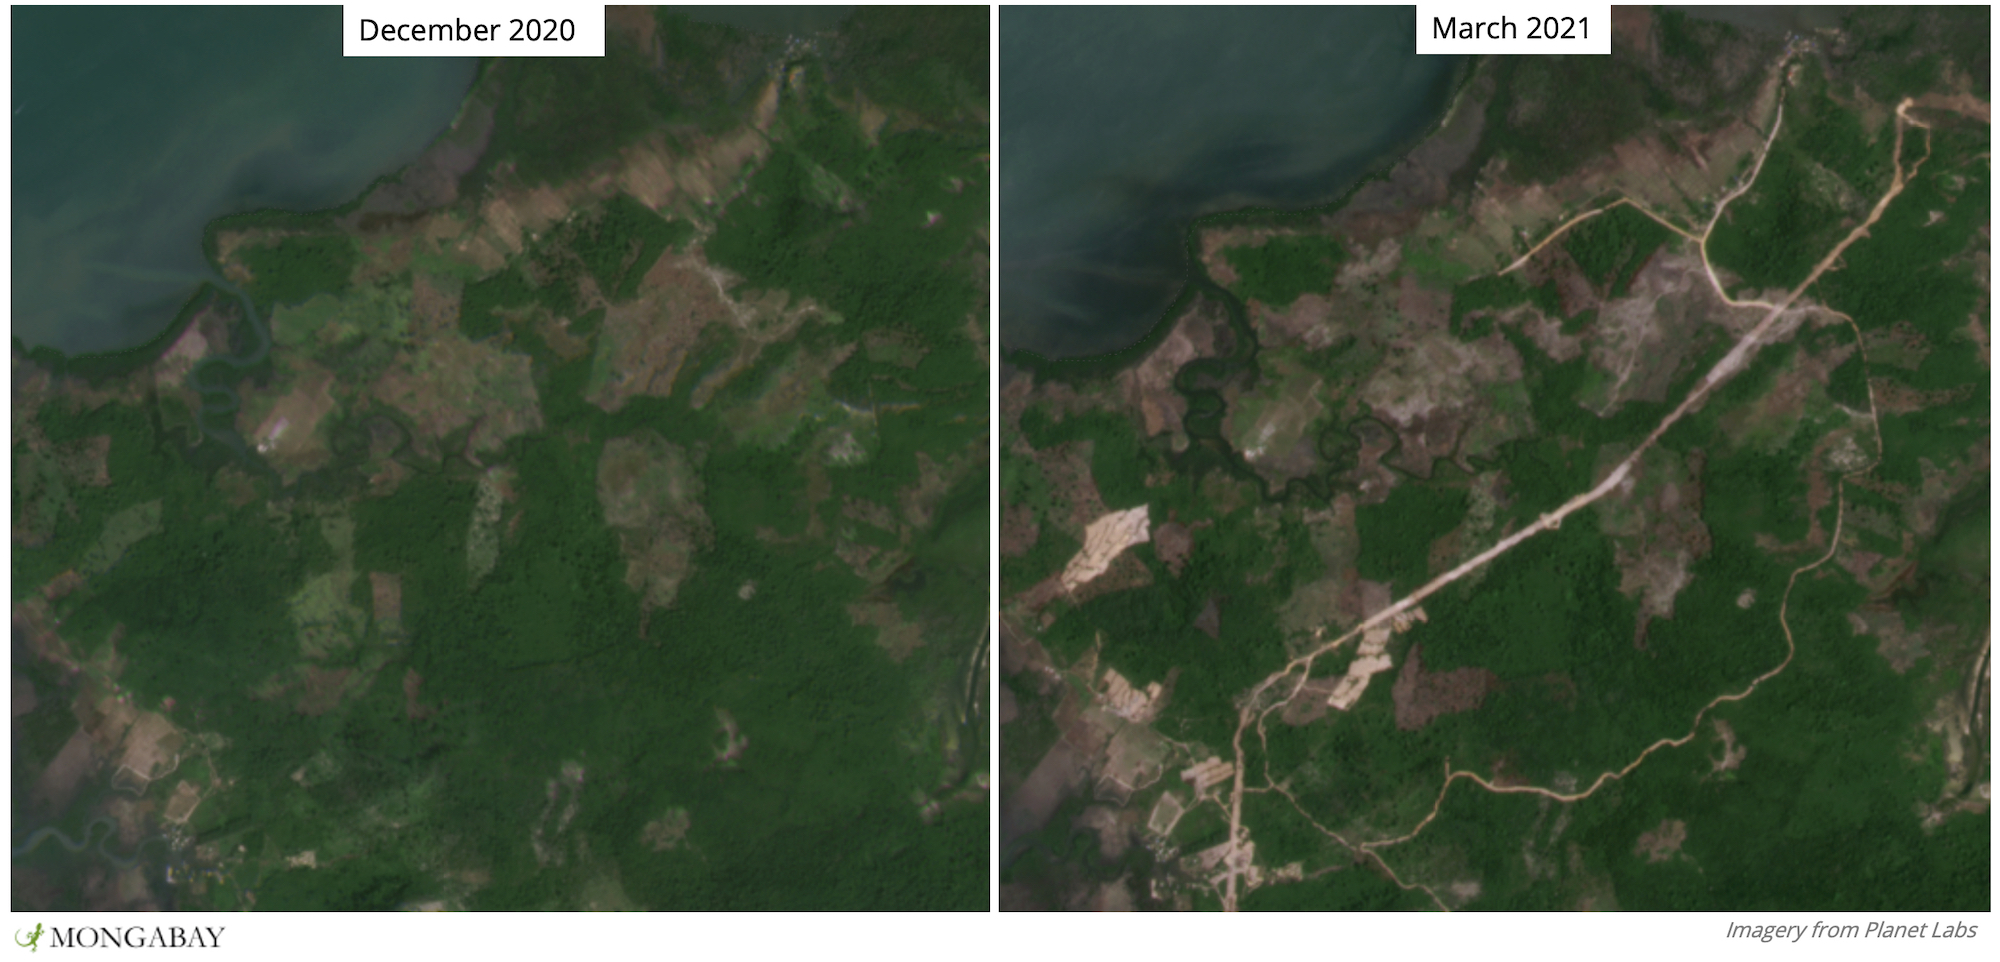 Over the past few months a road has appeared in a northern portion of Botum Sakor, along with associated deforestation - including in mangrove areas.